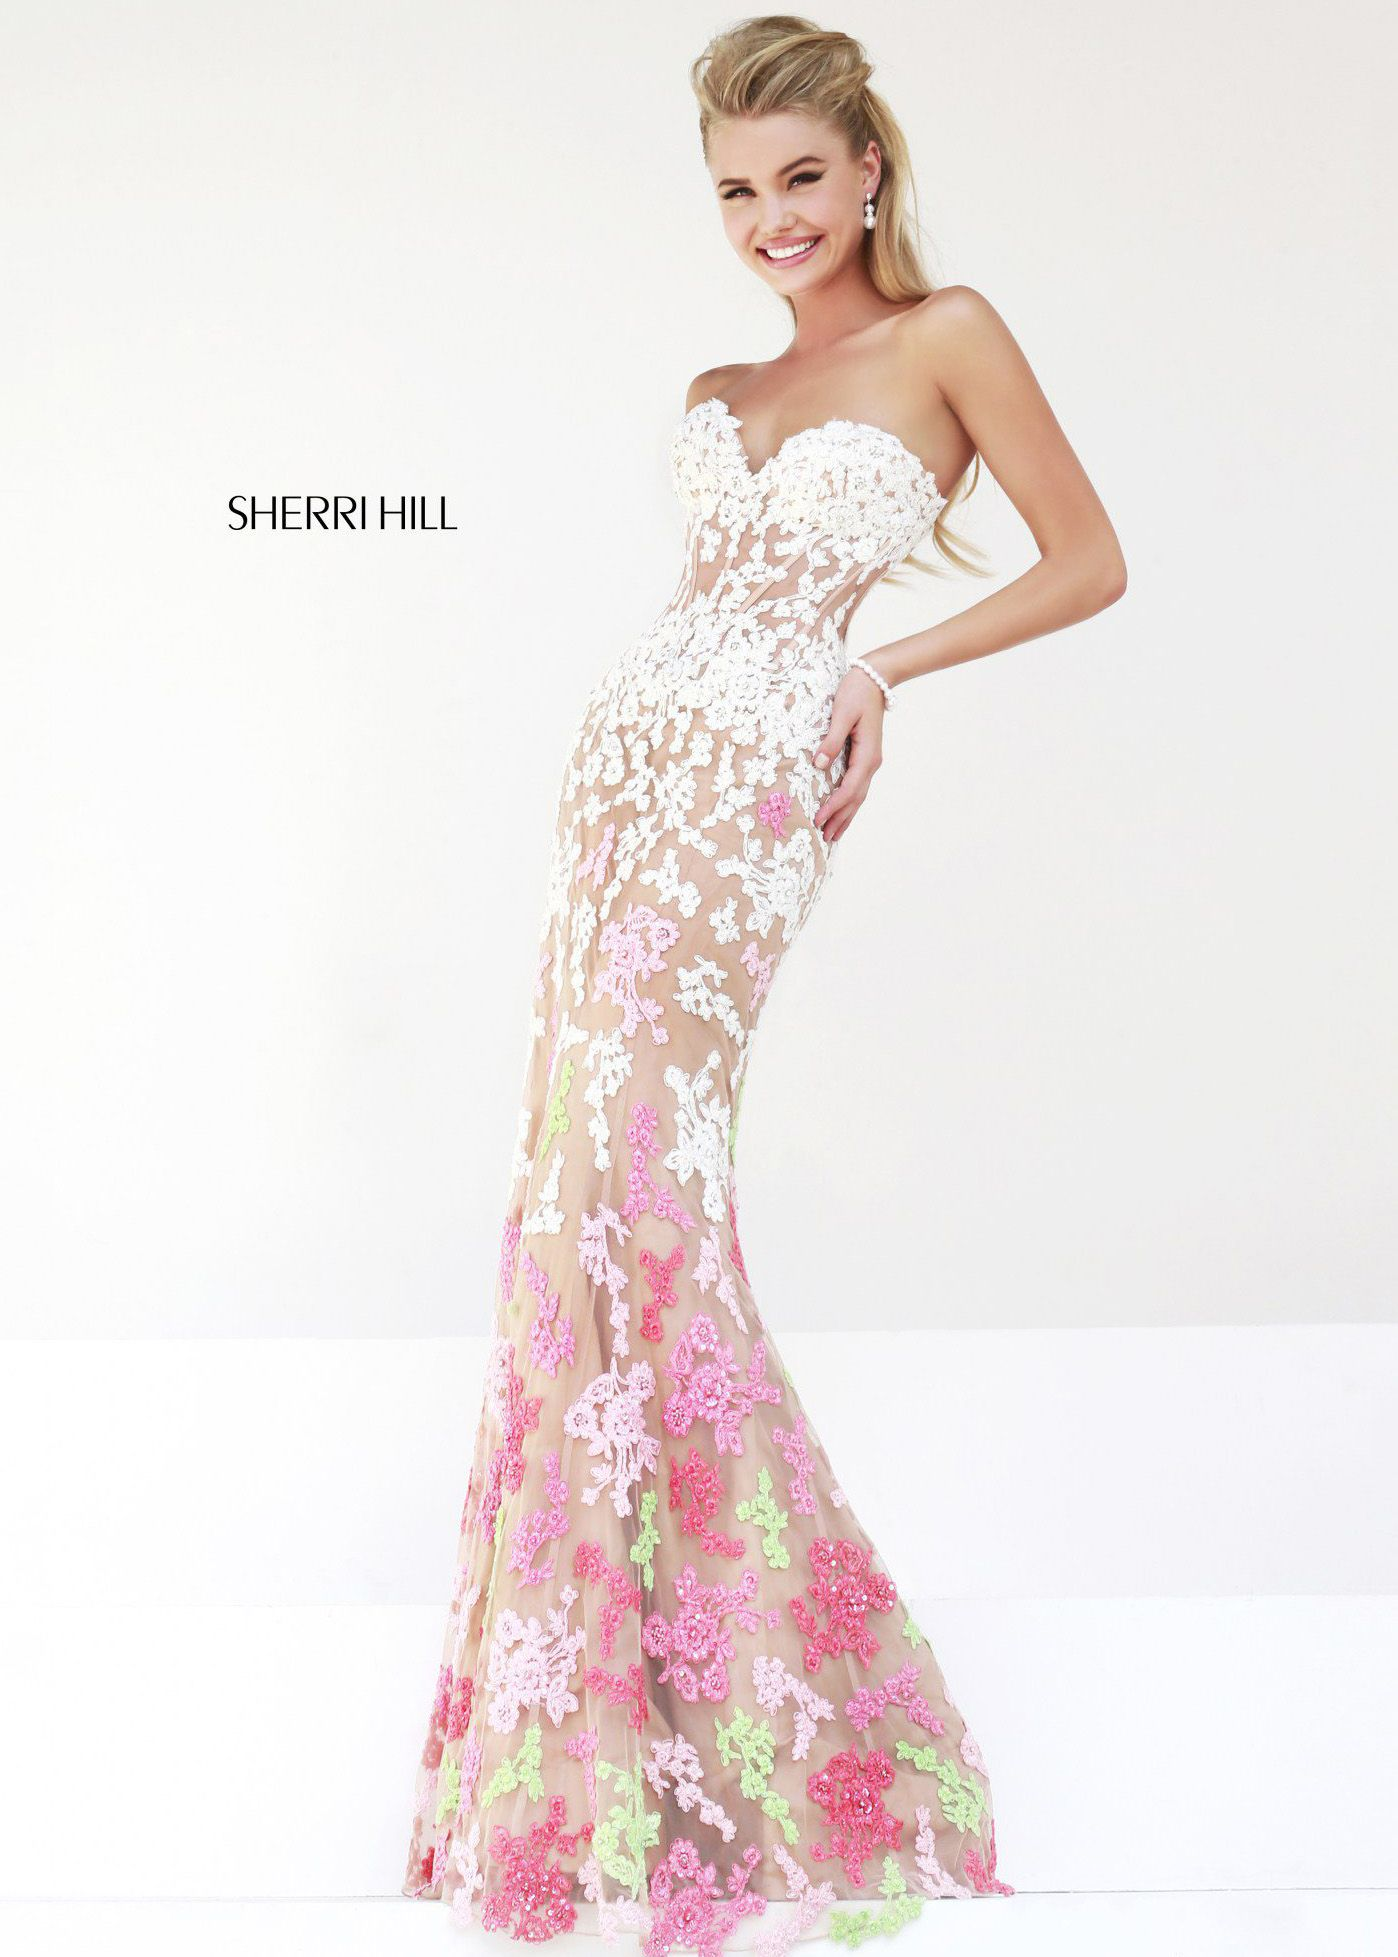 Sherri Hill 11134 - Ivory/Coral Lace Mermaid Prom Dresses Online ...